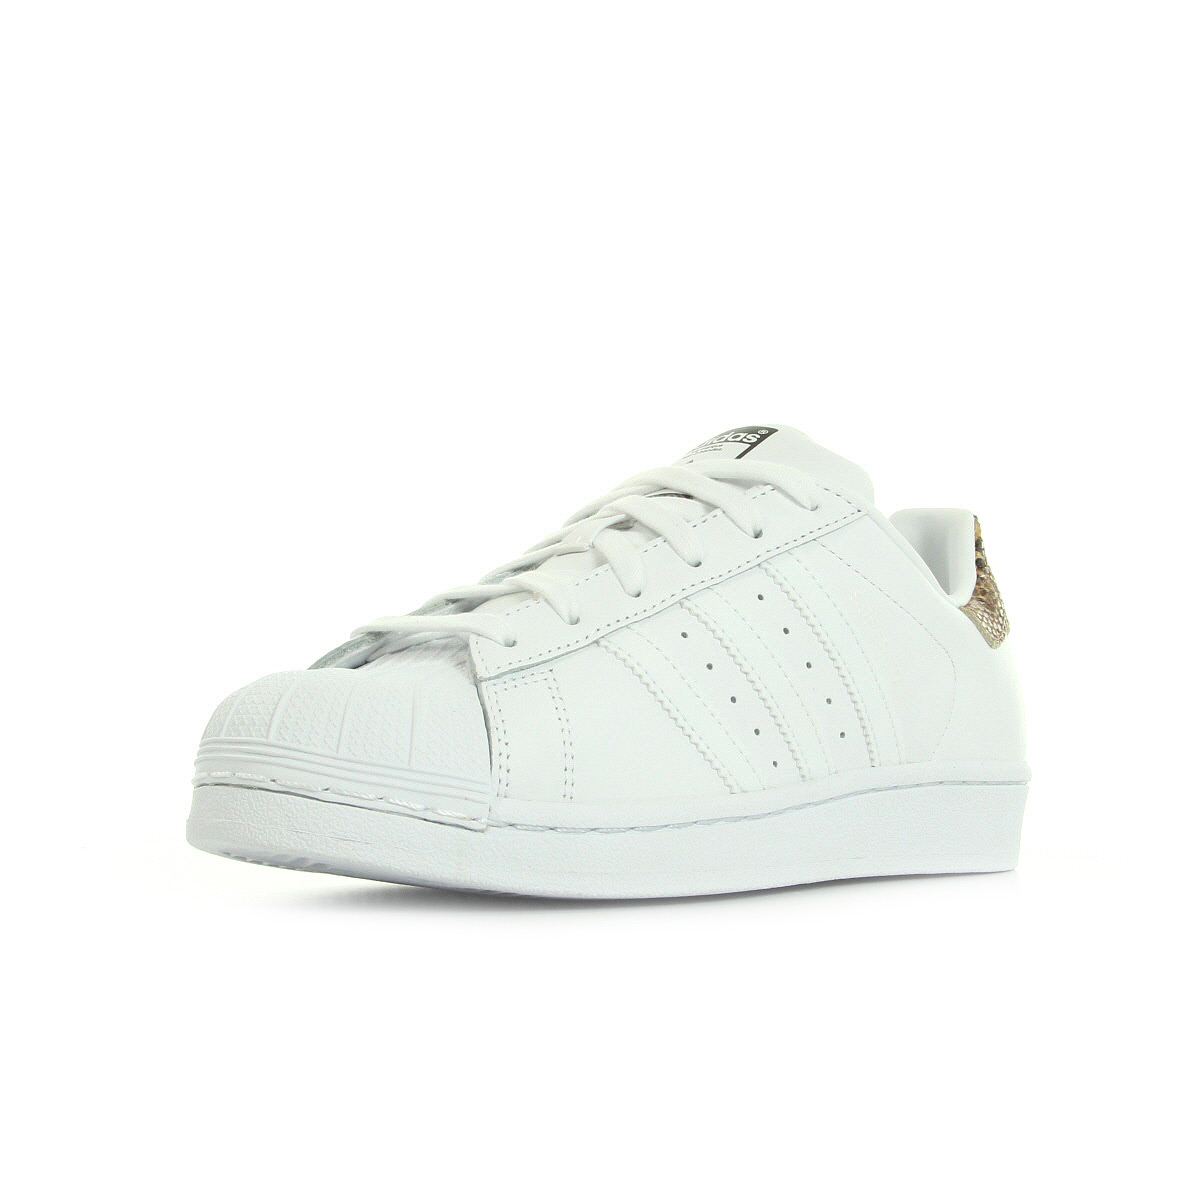 chaussures baskets adidas femme superstar w taille blanc blanche cuir lacets ebay. Black Bedroom Furniture Sets. Home Design Ideas